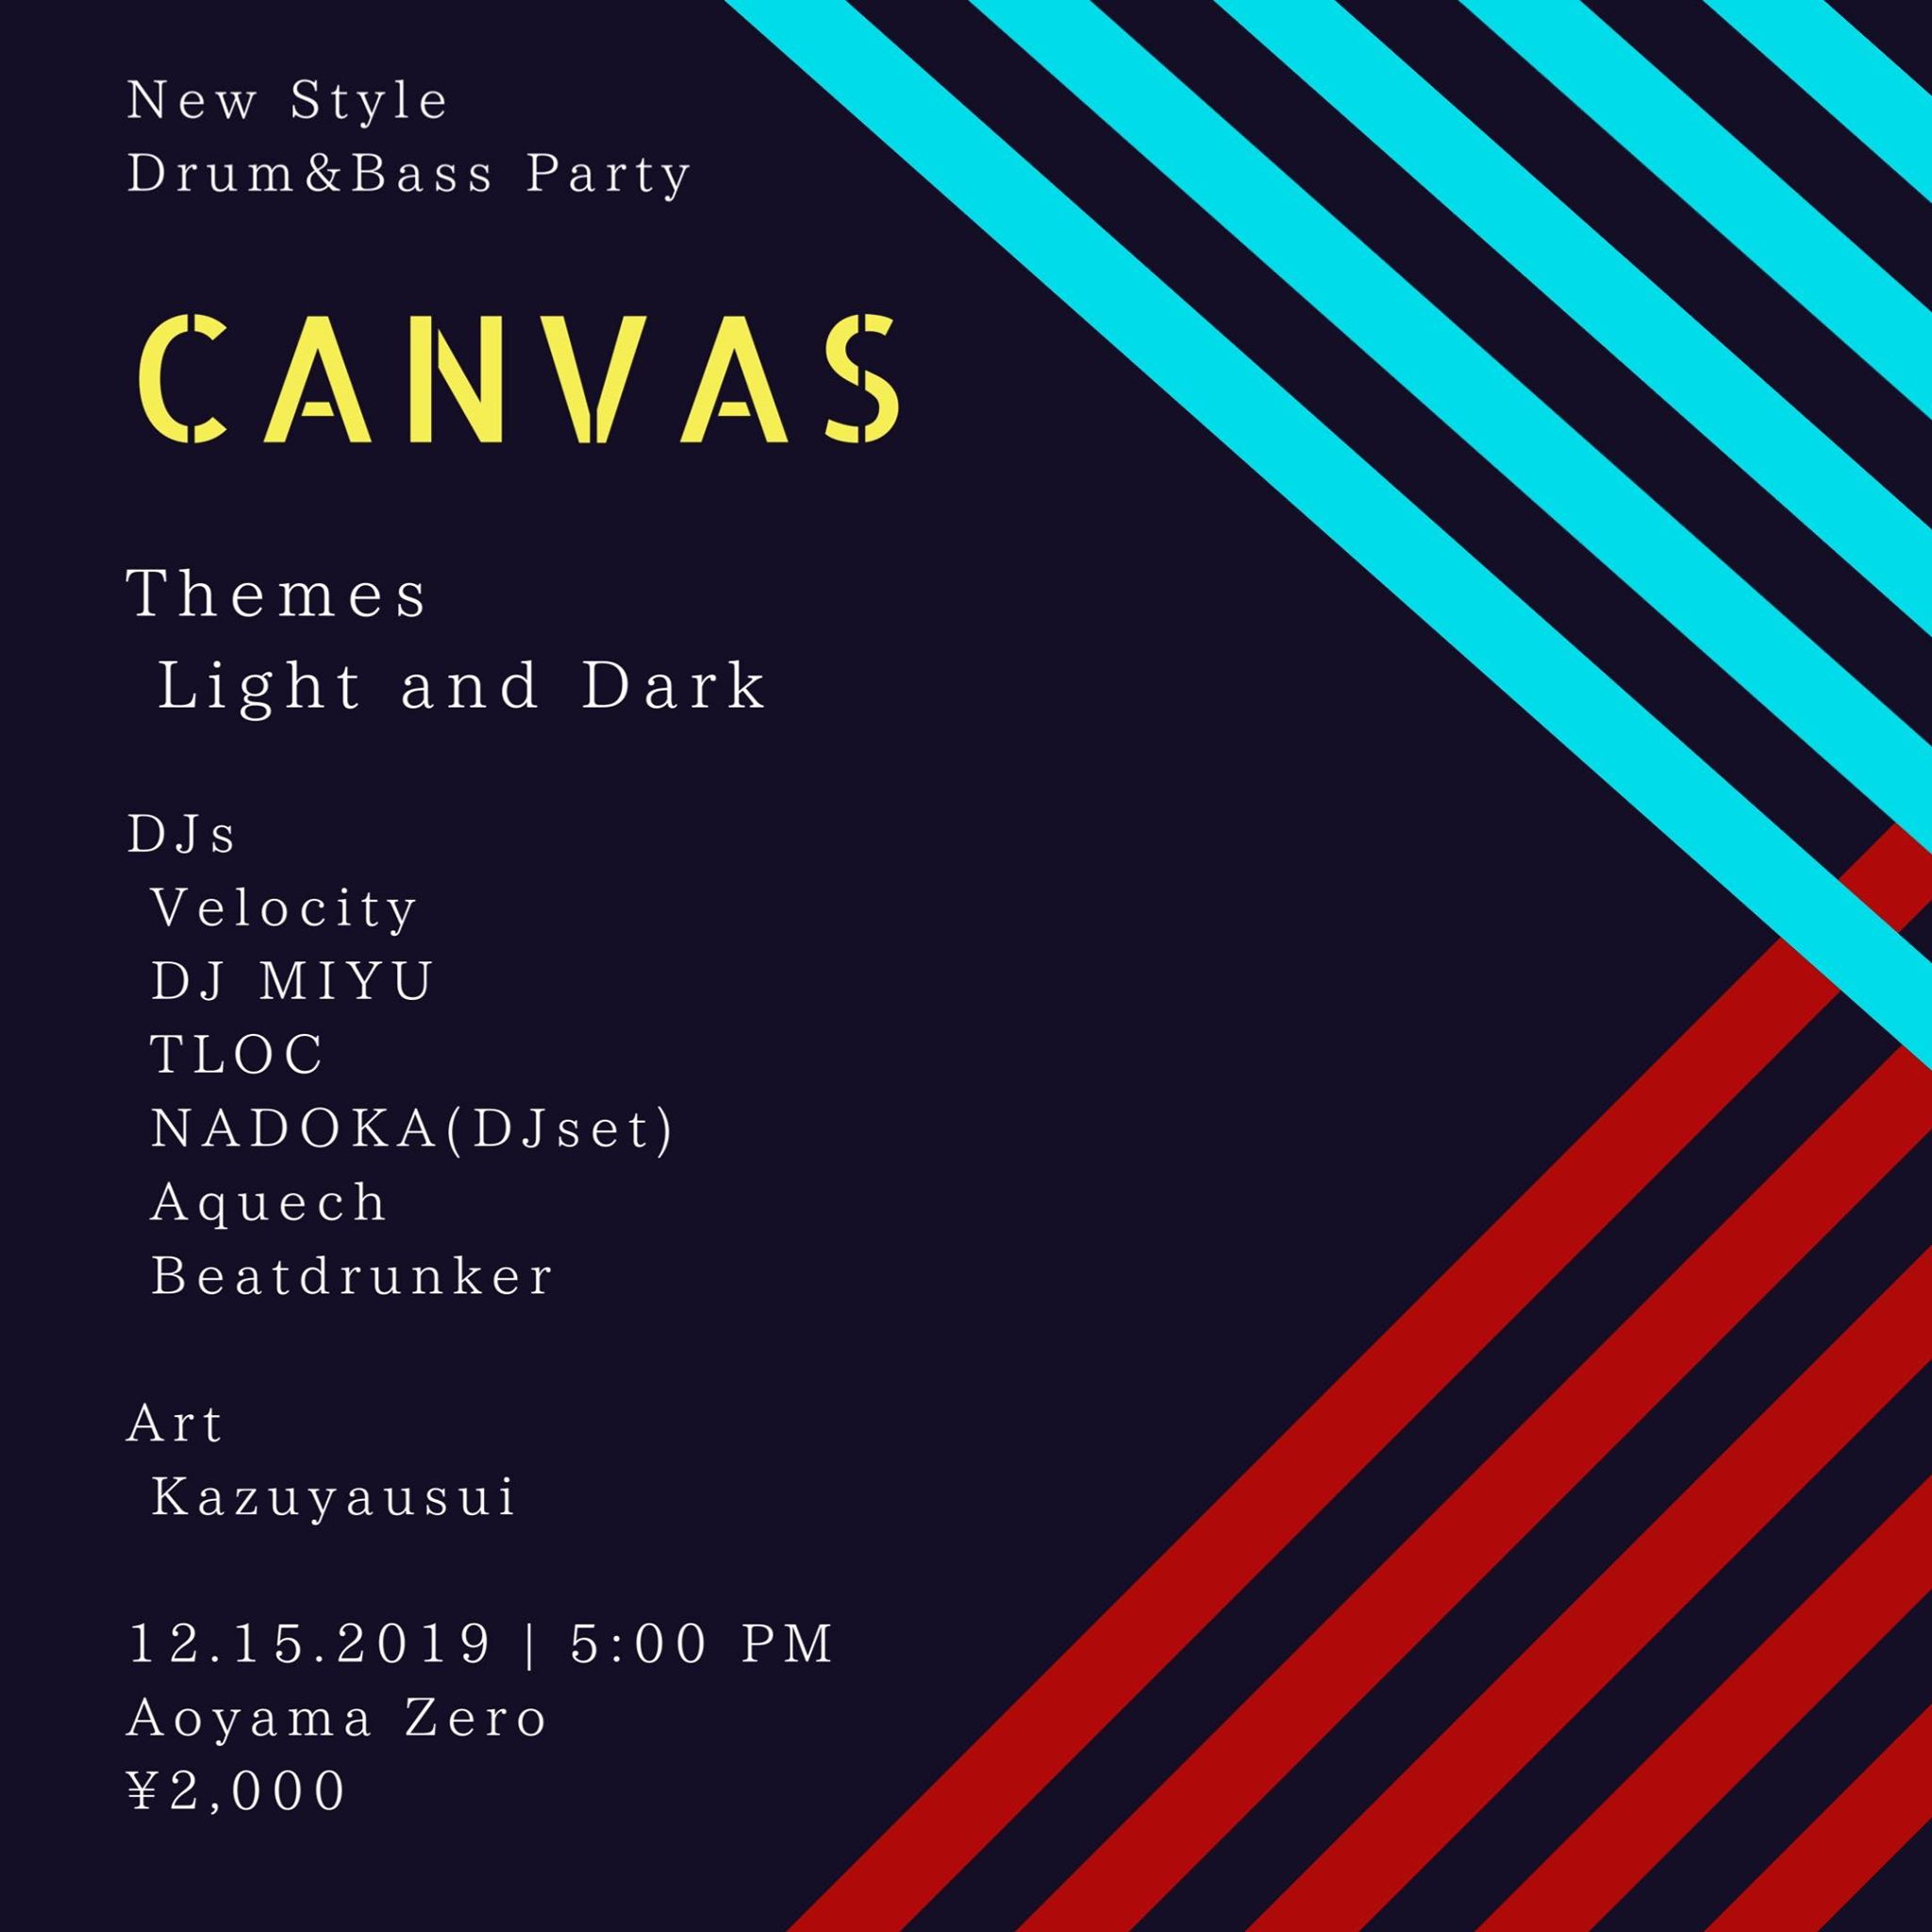 New Style Drum & Bass Party  CANVAS